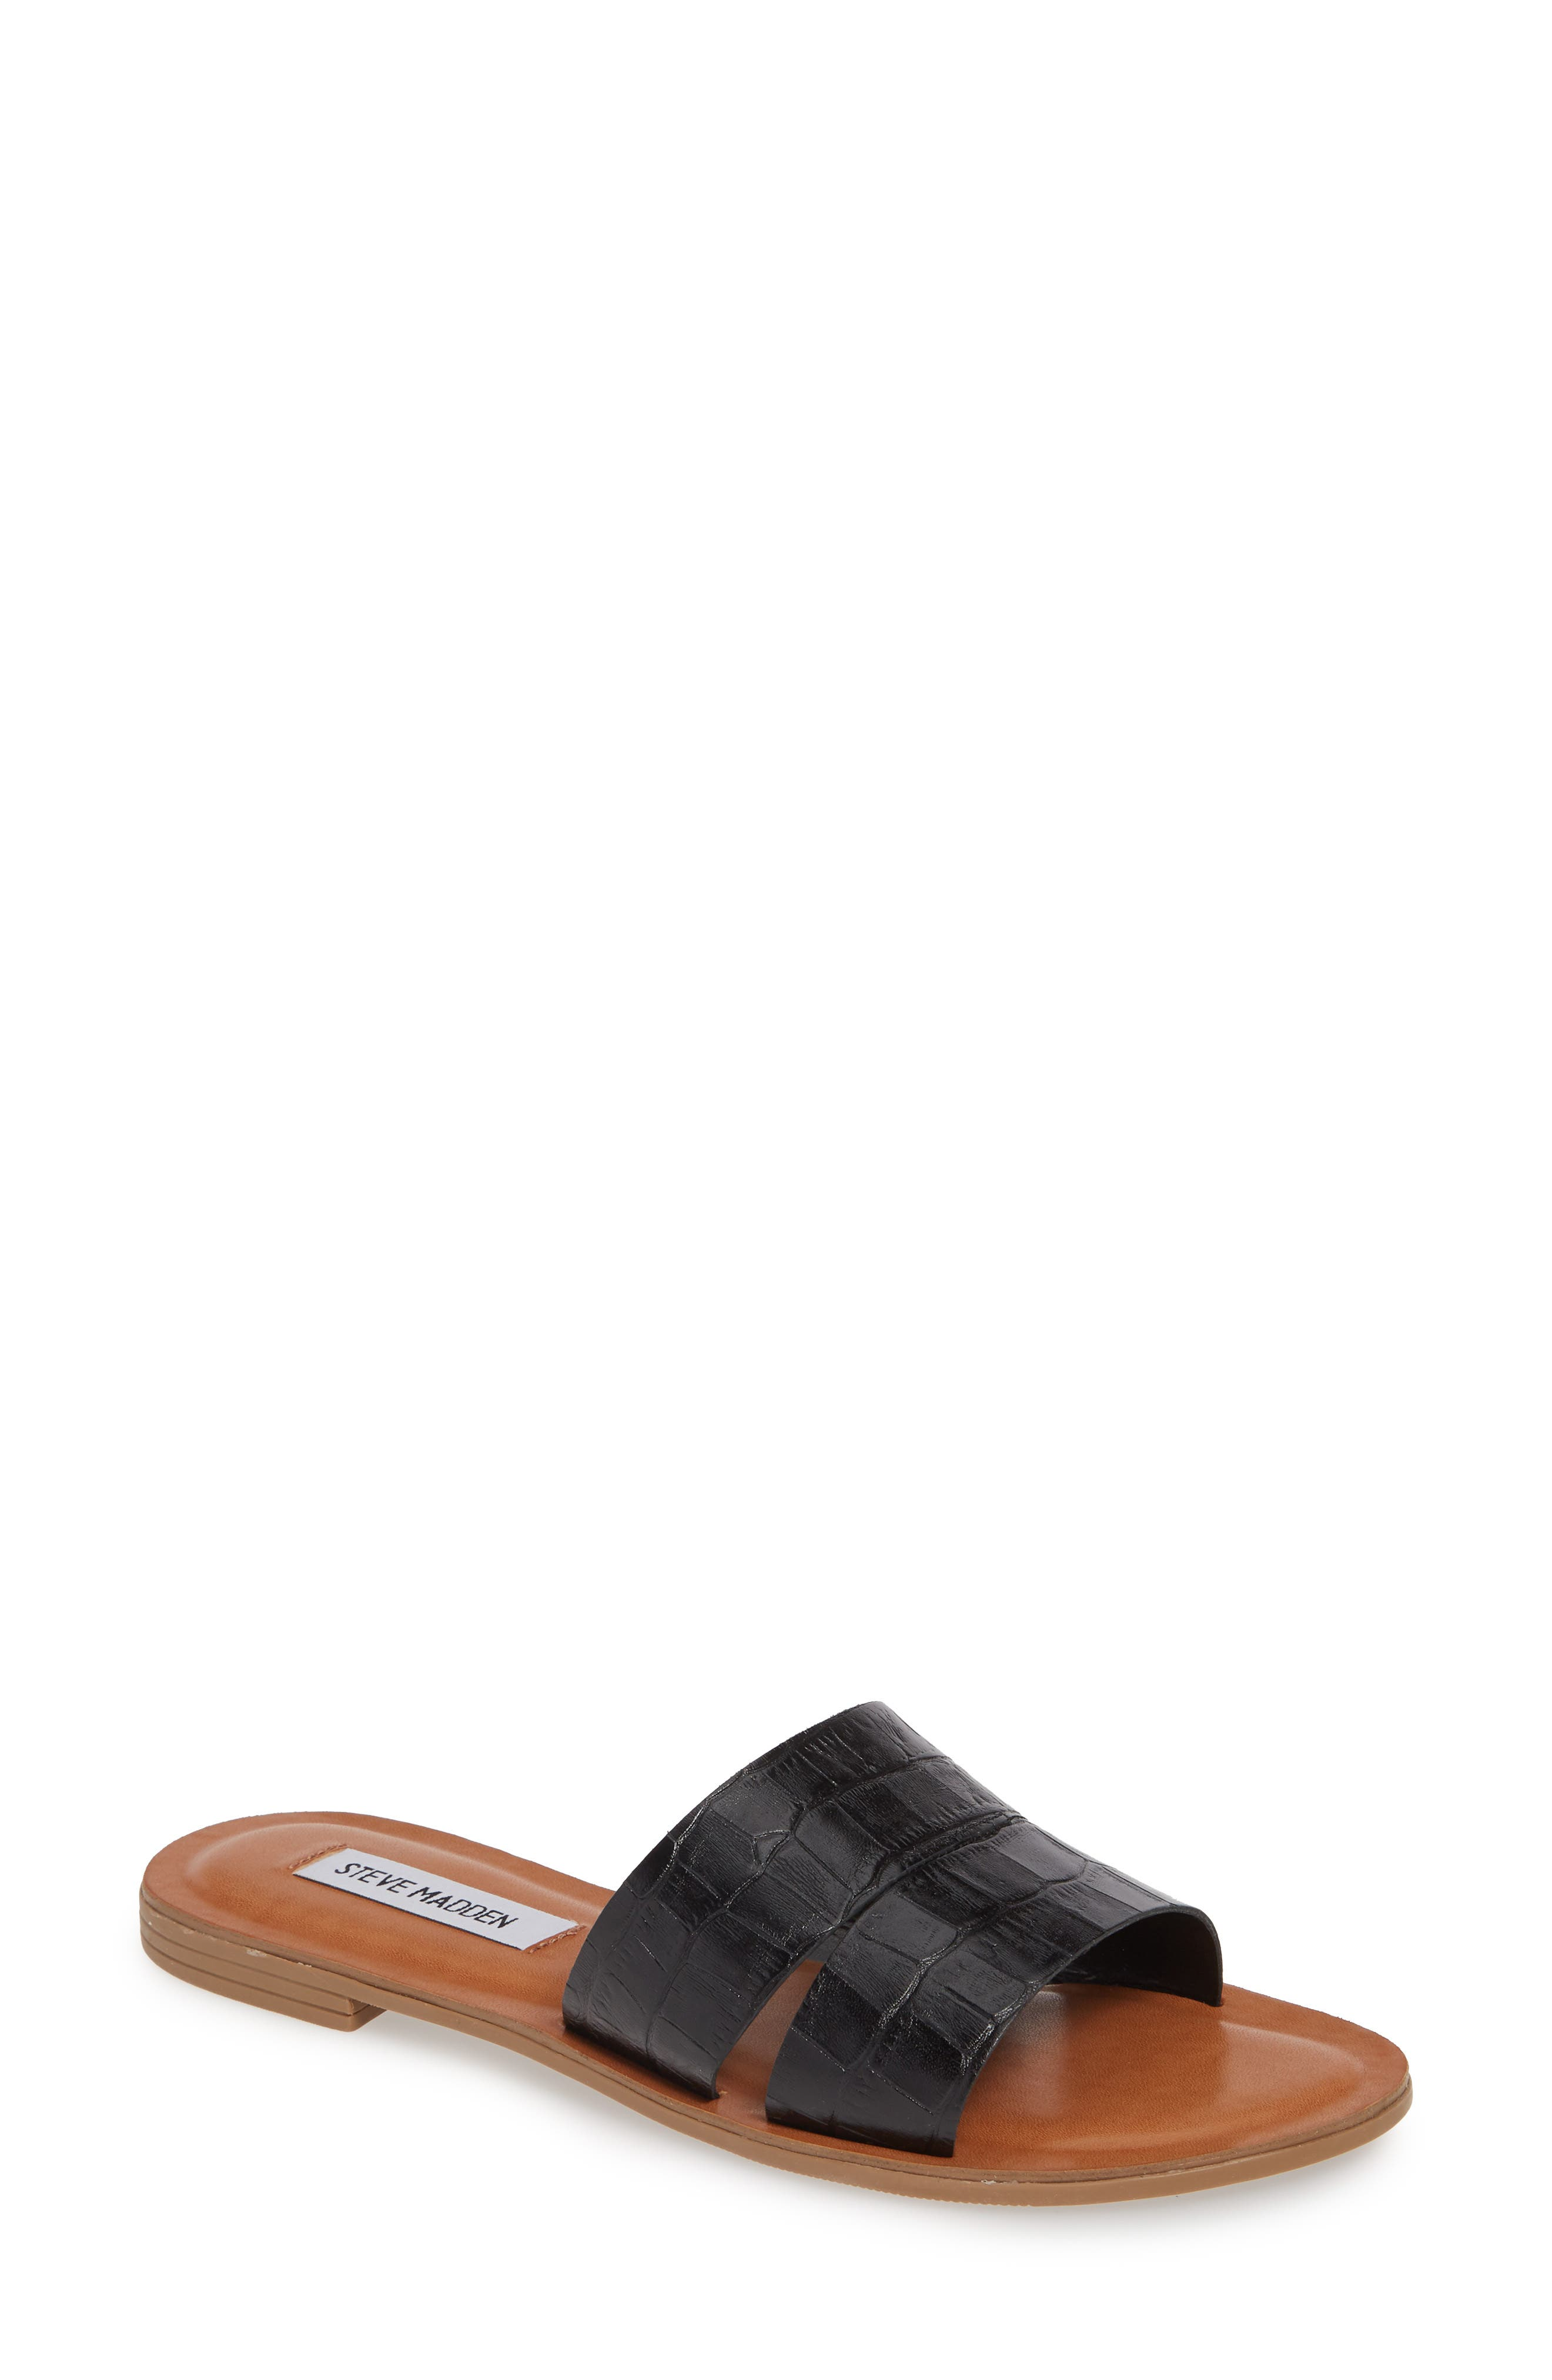 Alexandra Slide Sandal, Main, color, BLACK CROCO